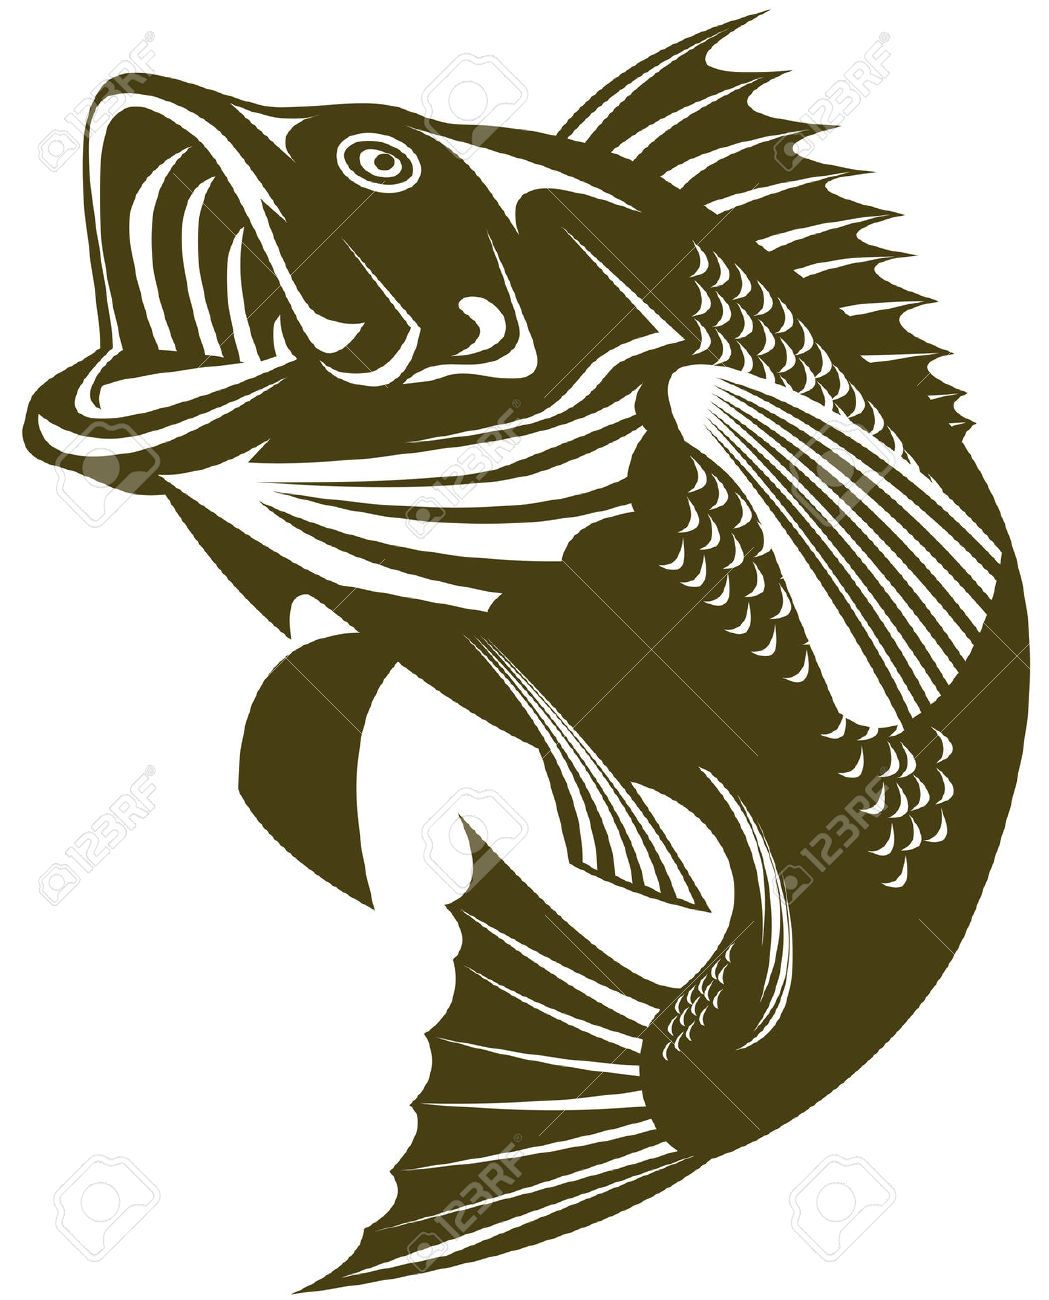 Bass fishing clipart graphic royalty free download Largemouth Bass Cliparts Stock Vector And Royalty Free Largemouth ... graphic royalty free download